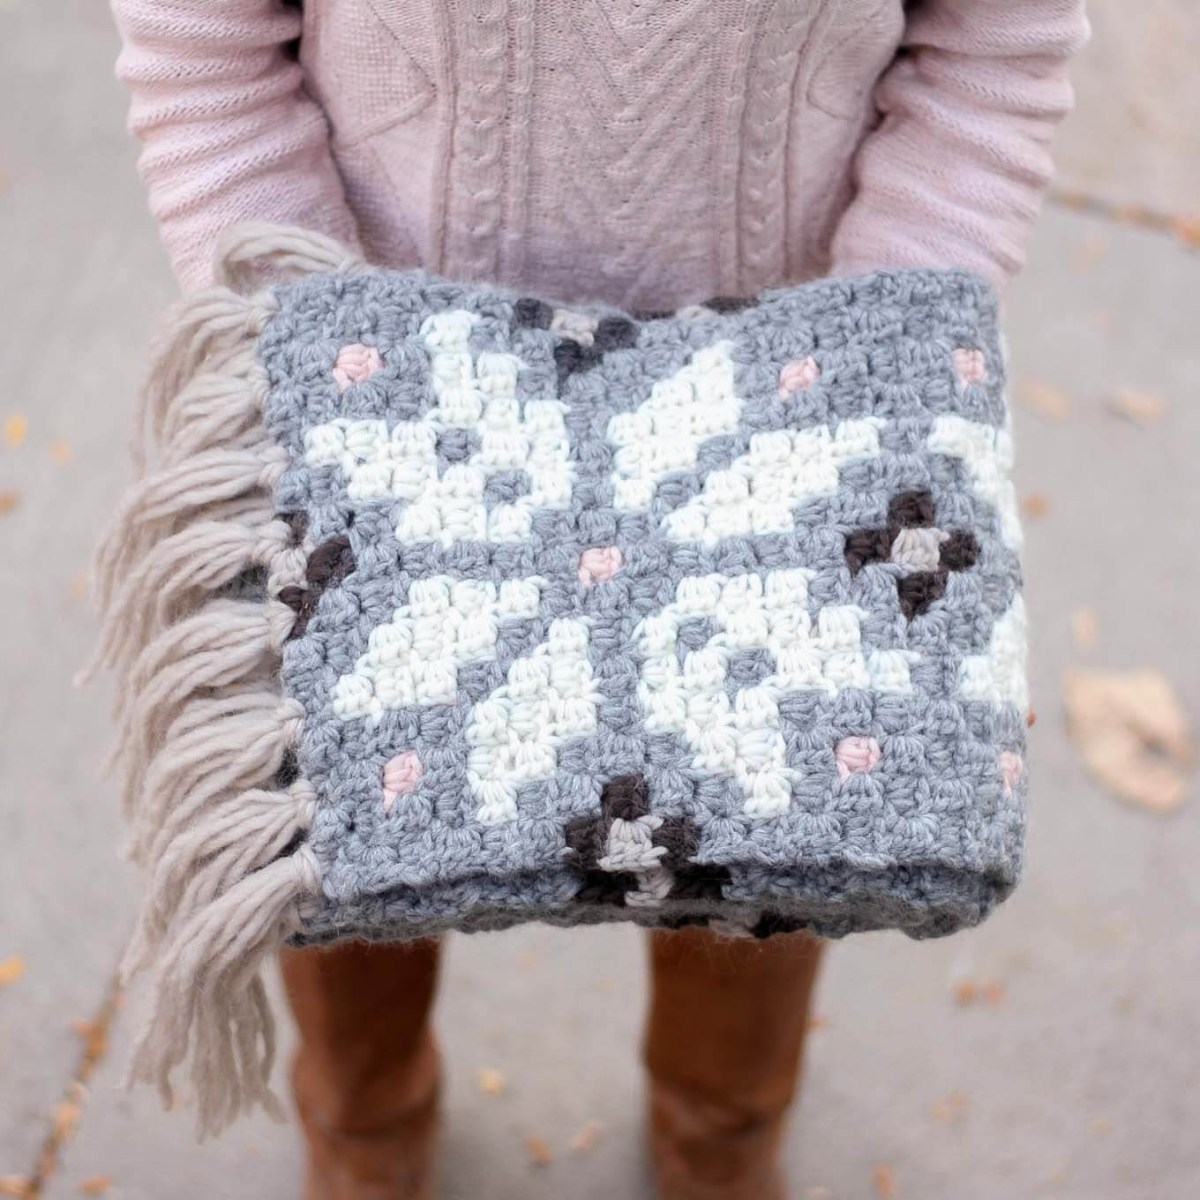 Scarf Crochet Pattern Free to Upgrade Your Winter Style Nordic Crochet Super Scarf Free Pattern Make Do Crew